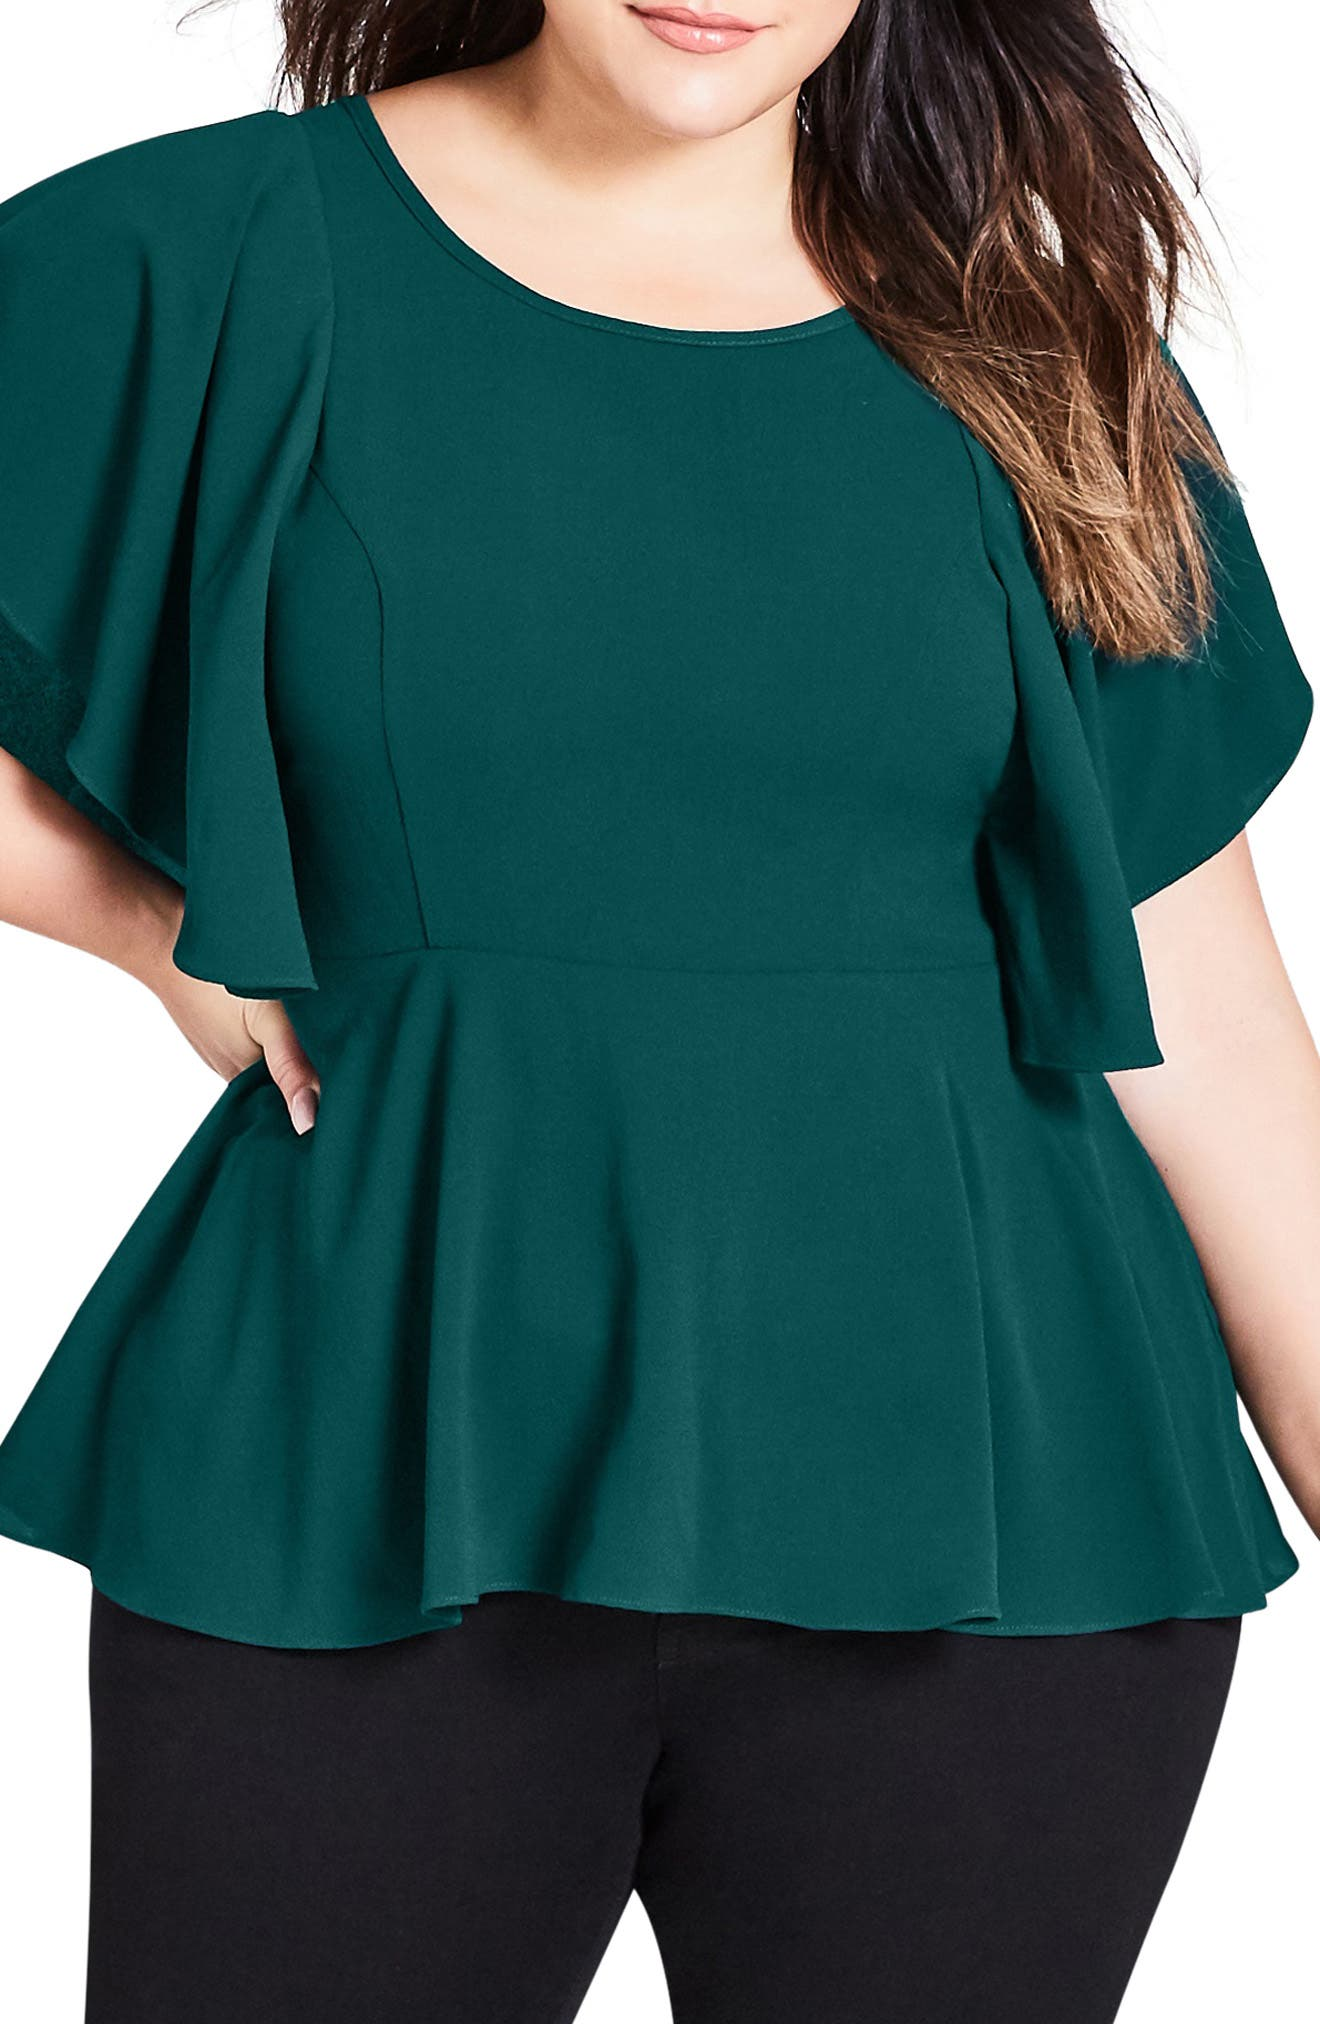 Romantic Mood Top,                         Main,                         color, JADE